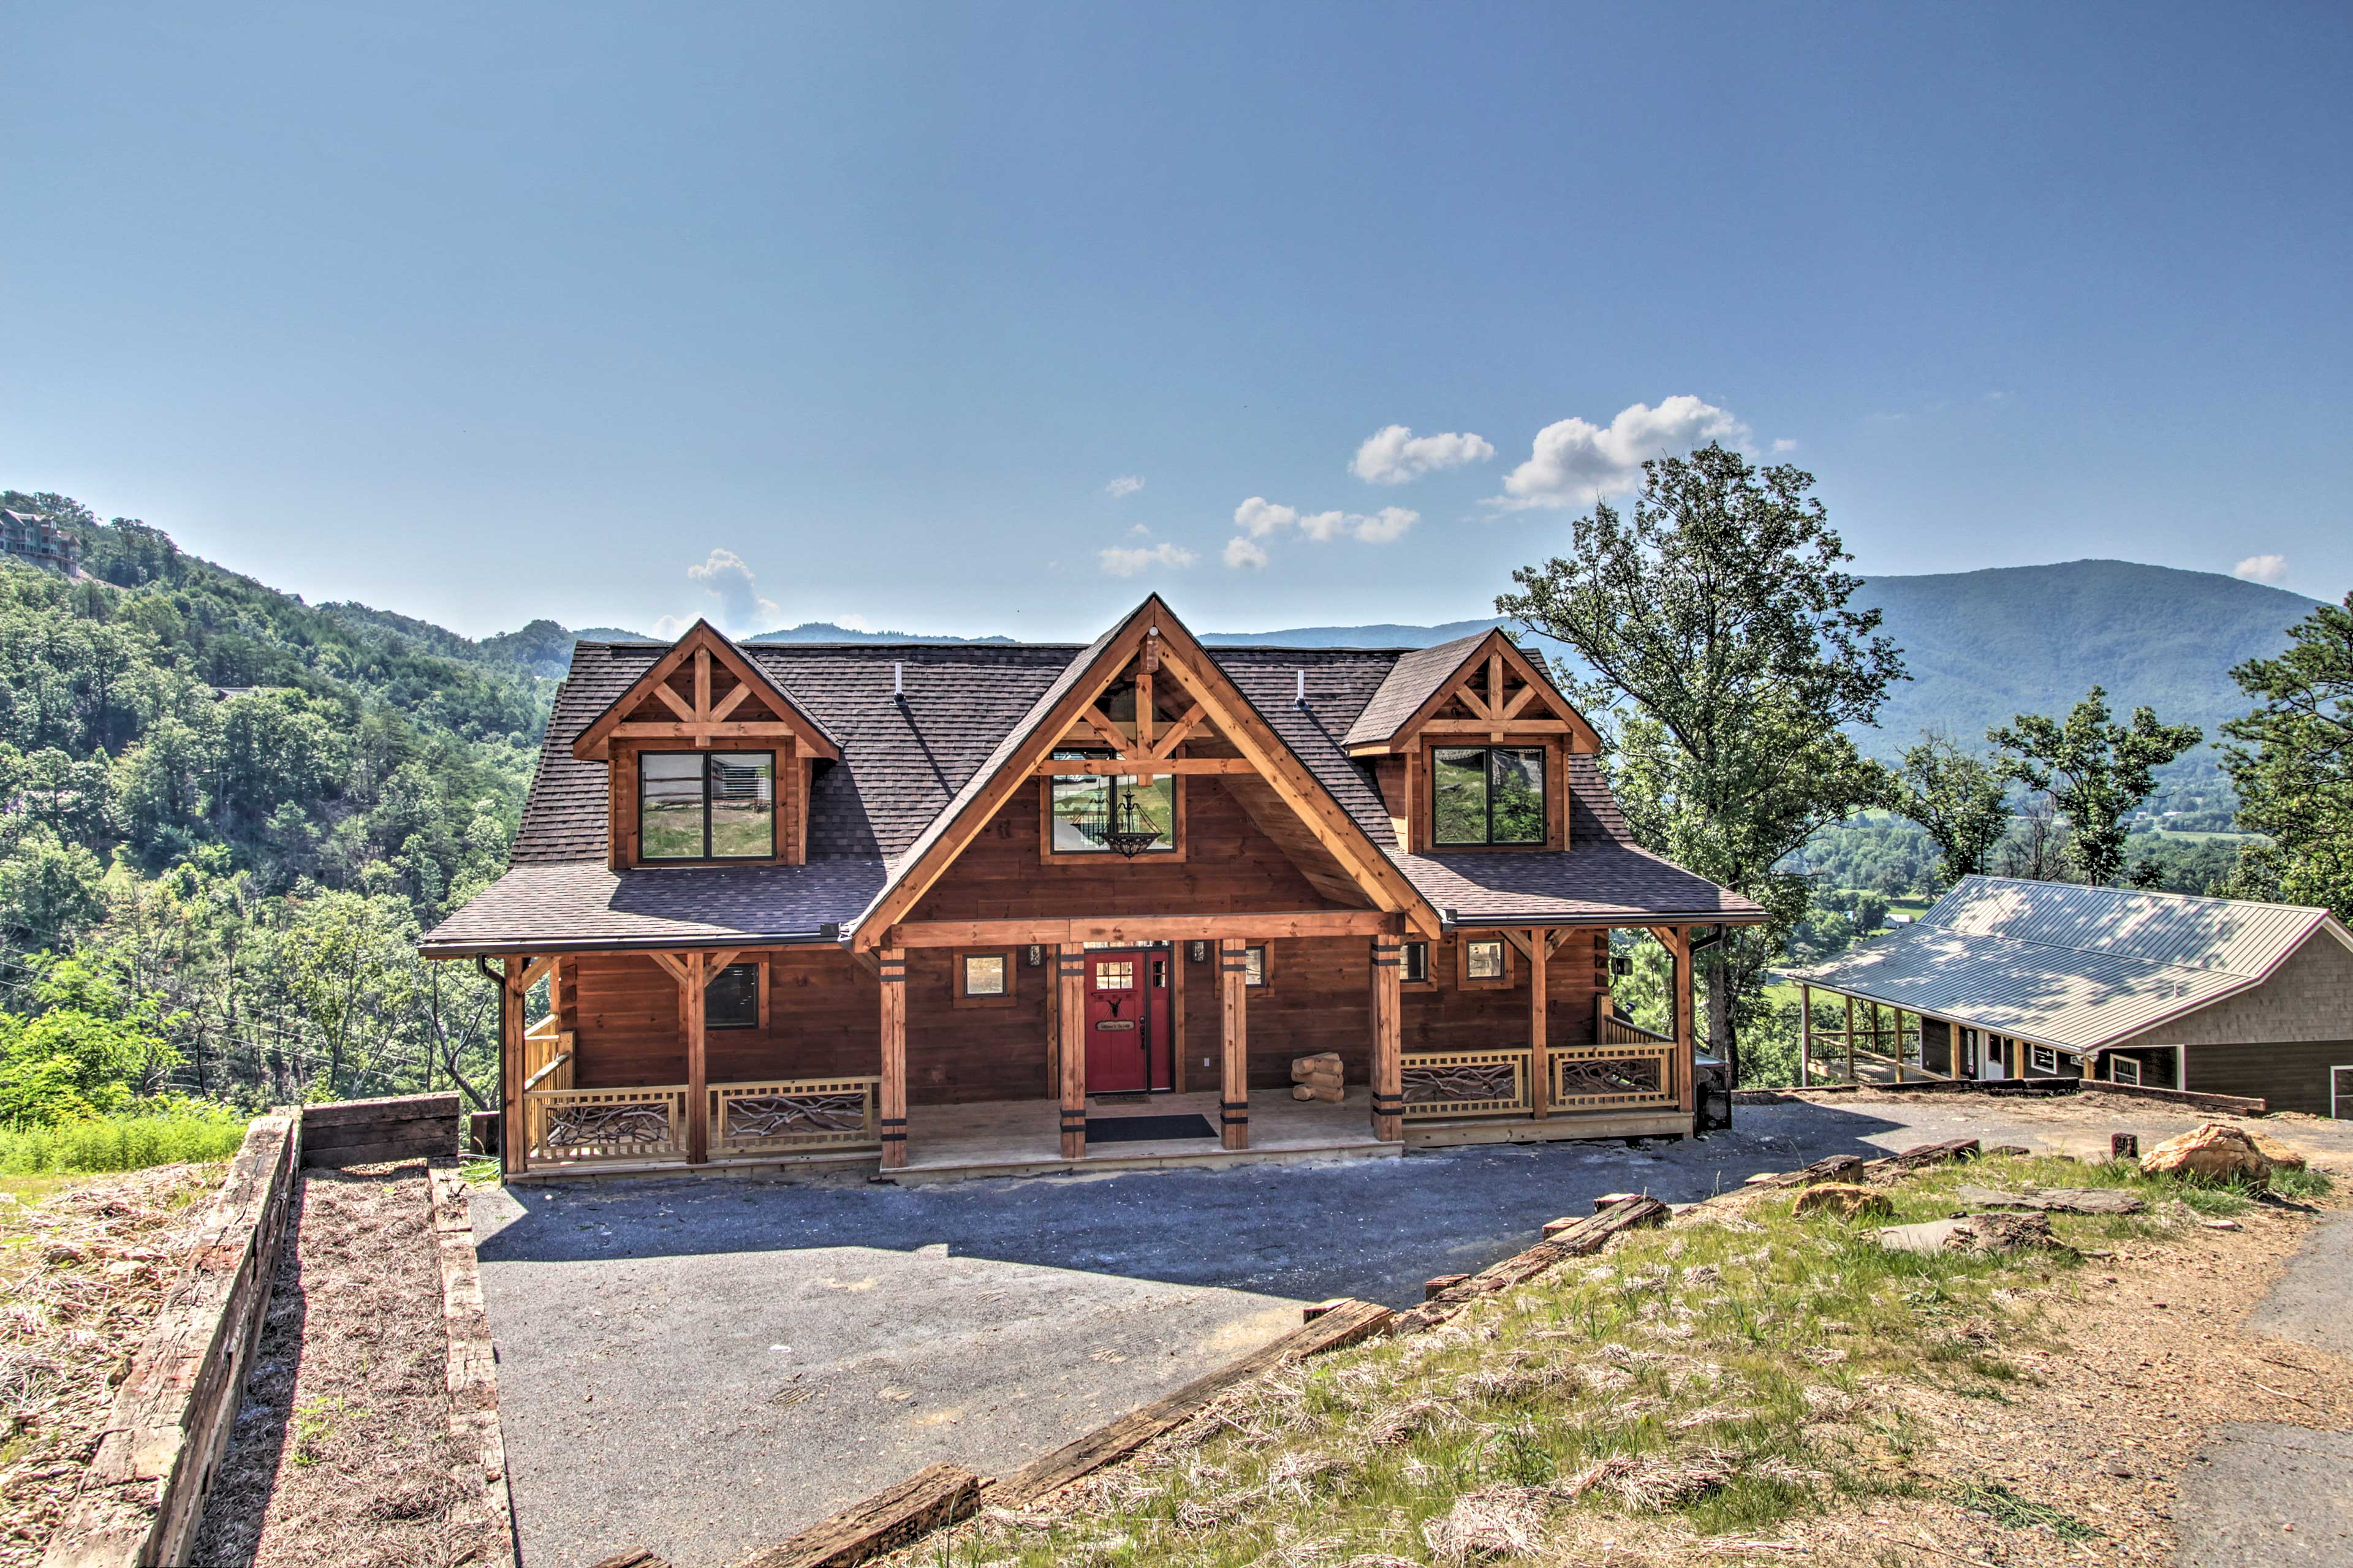 Pigeon Forge Vacation Rental   5BR   3.5BA   4,500 Sq Ft   Private Entrance